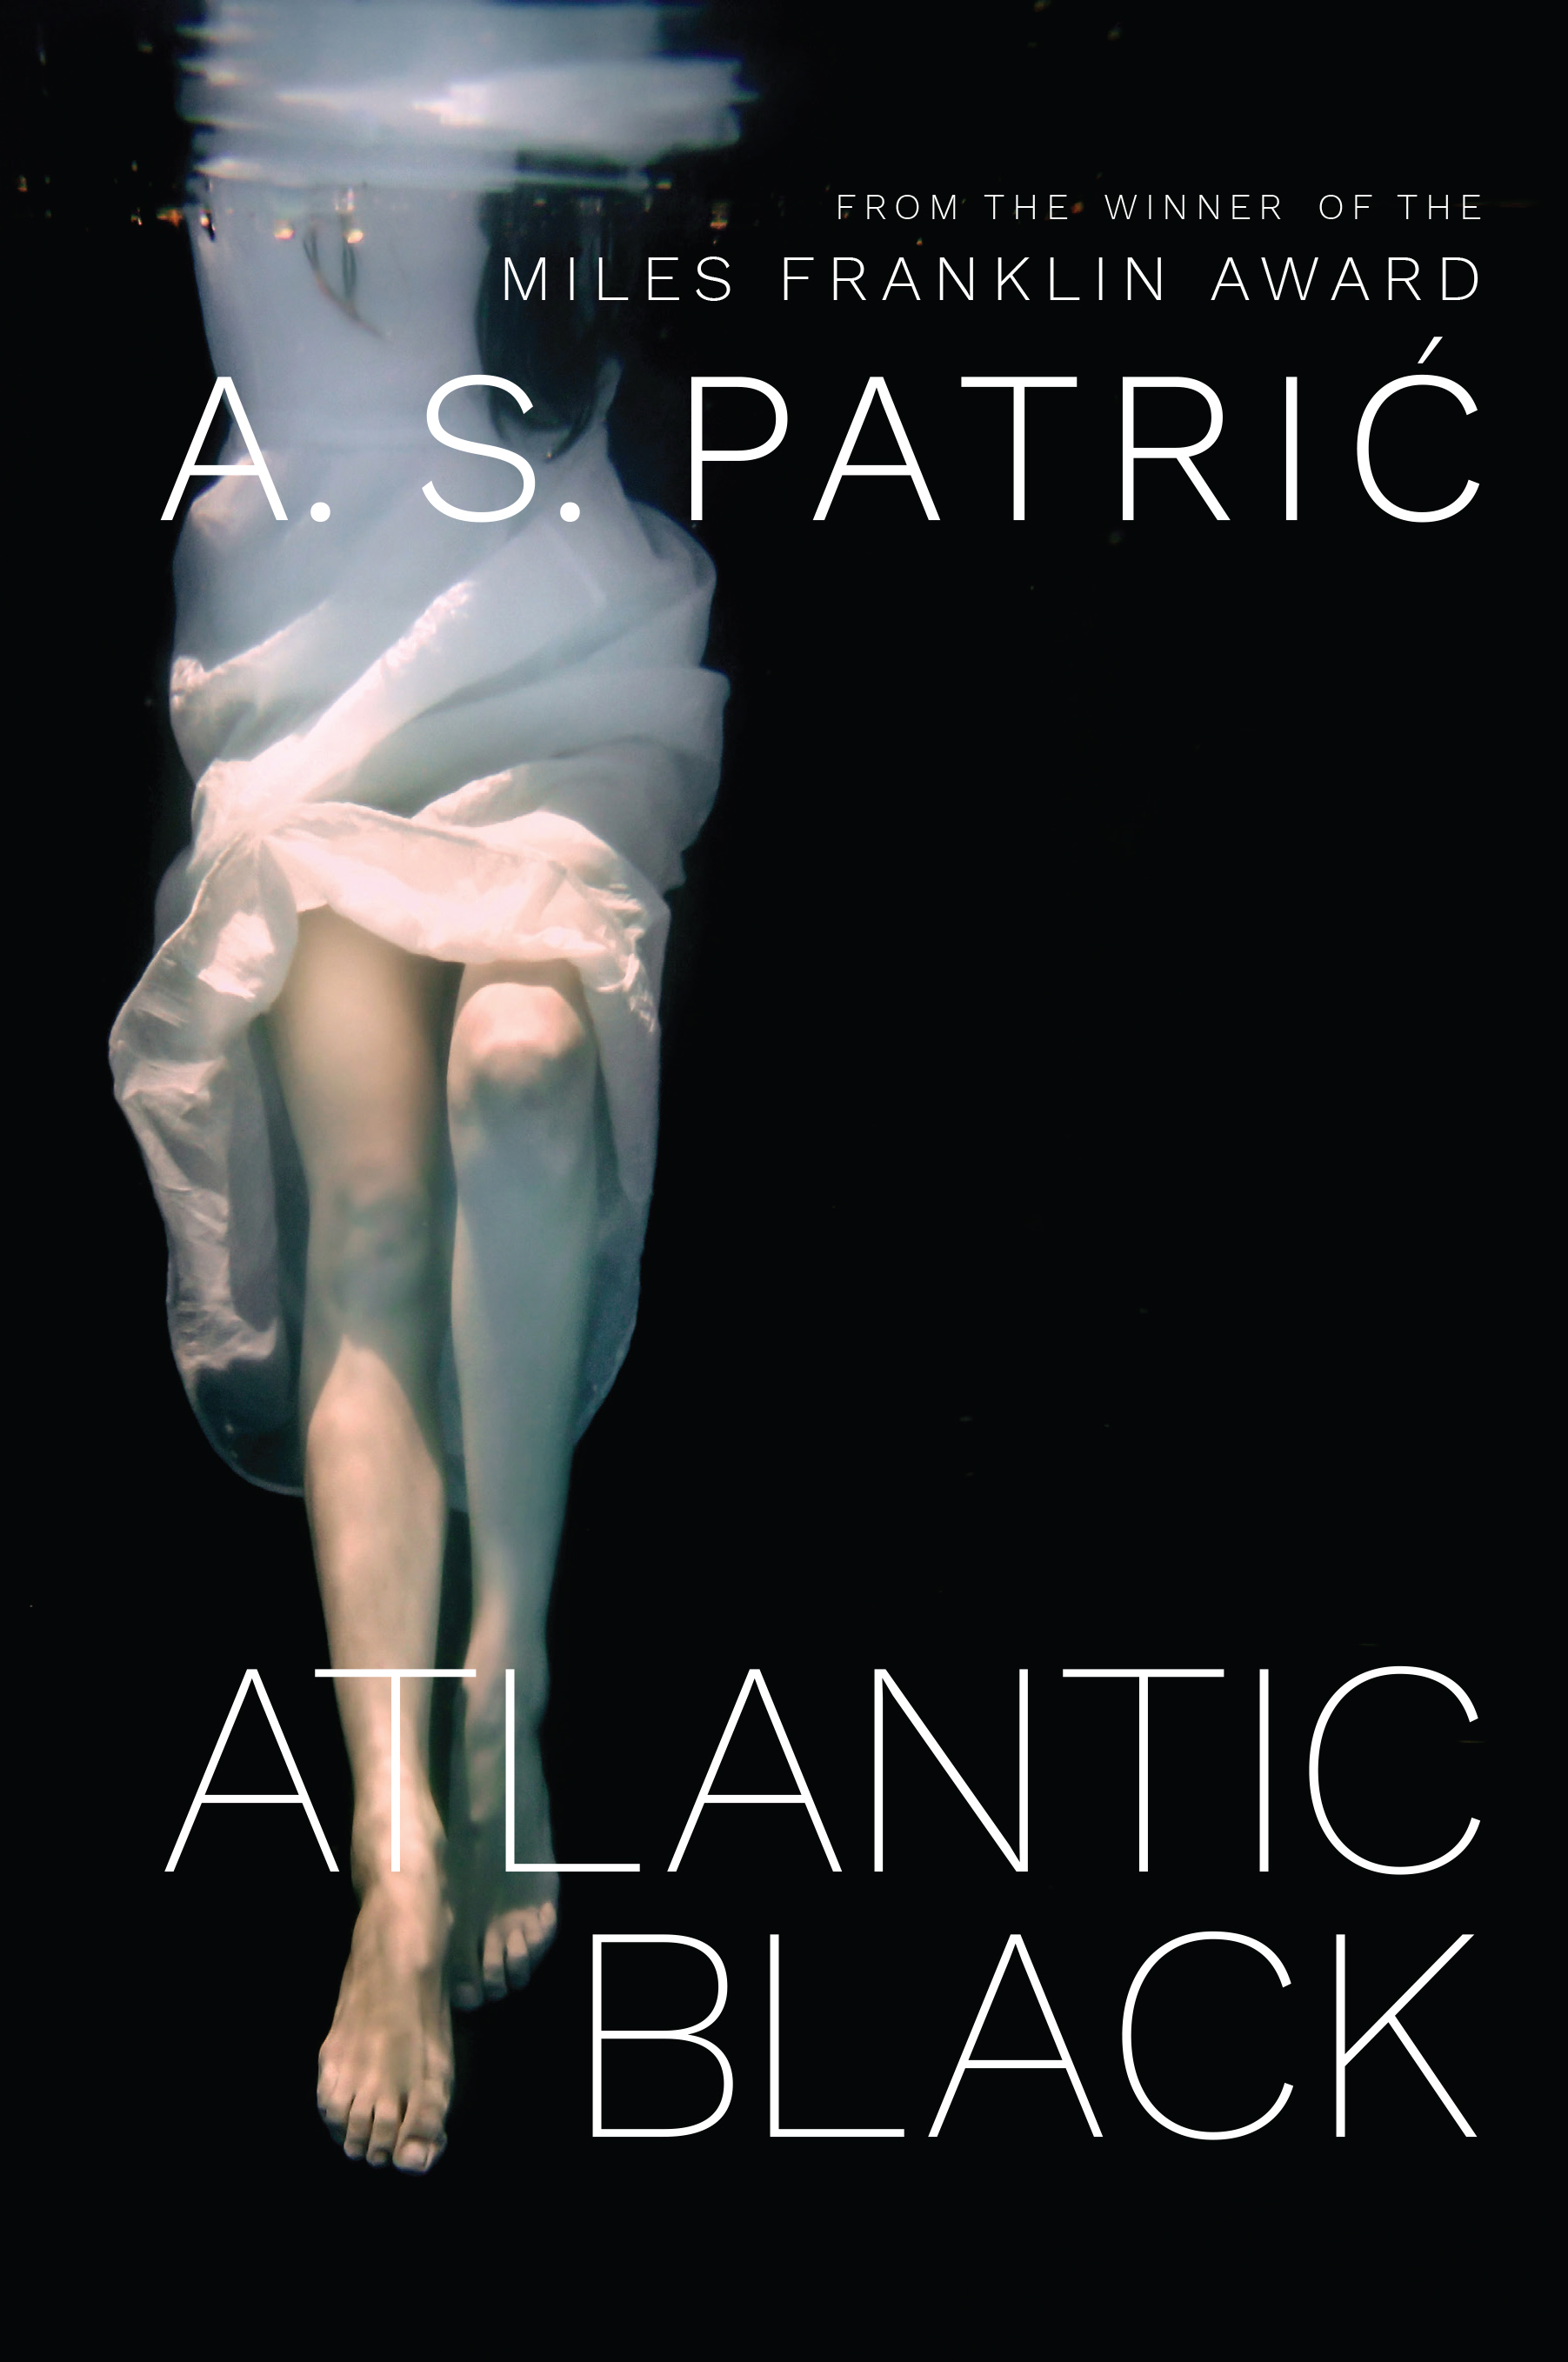 Atlantic Black by A S Patric